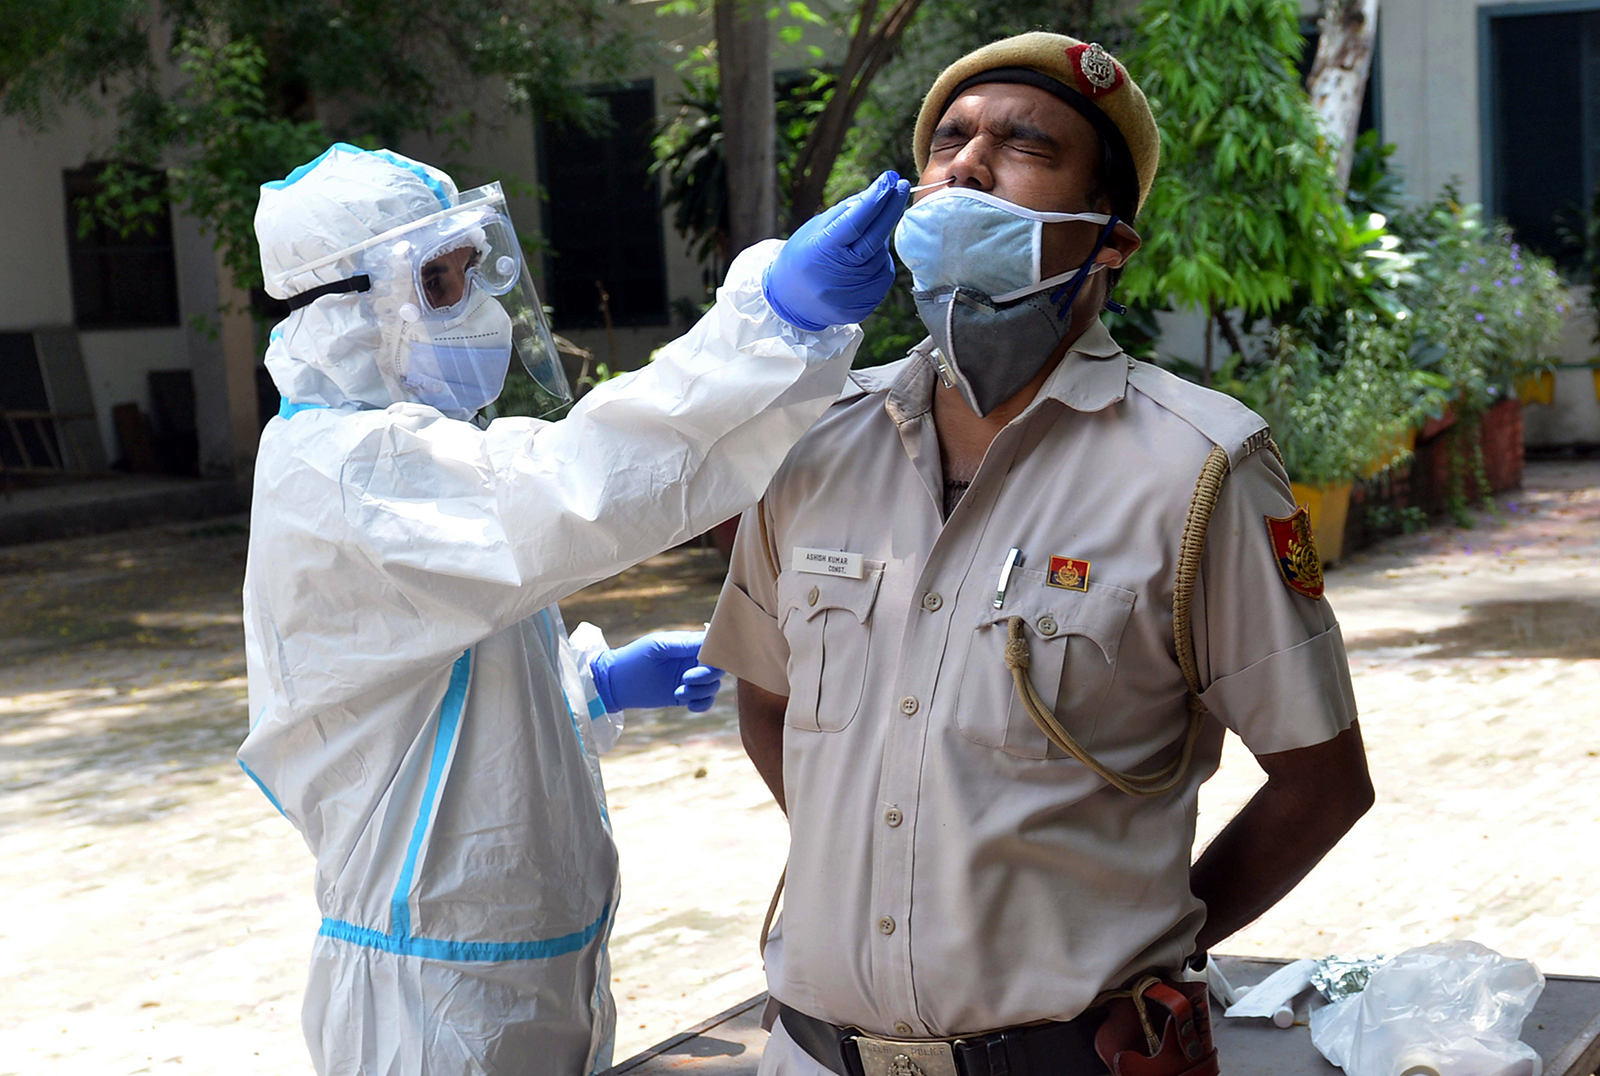 A health worker collects a sample for Covid-19 testing from a police officer in New Delhi, India on August 2.